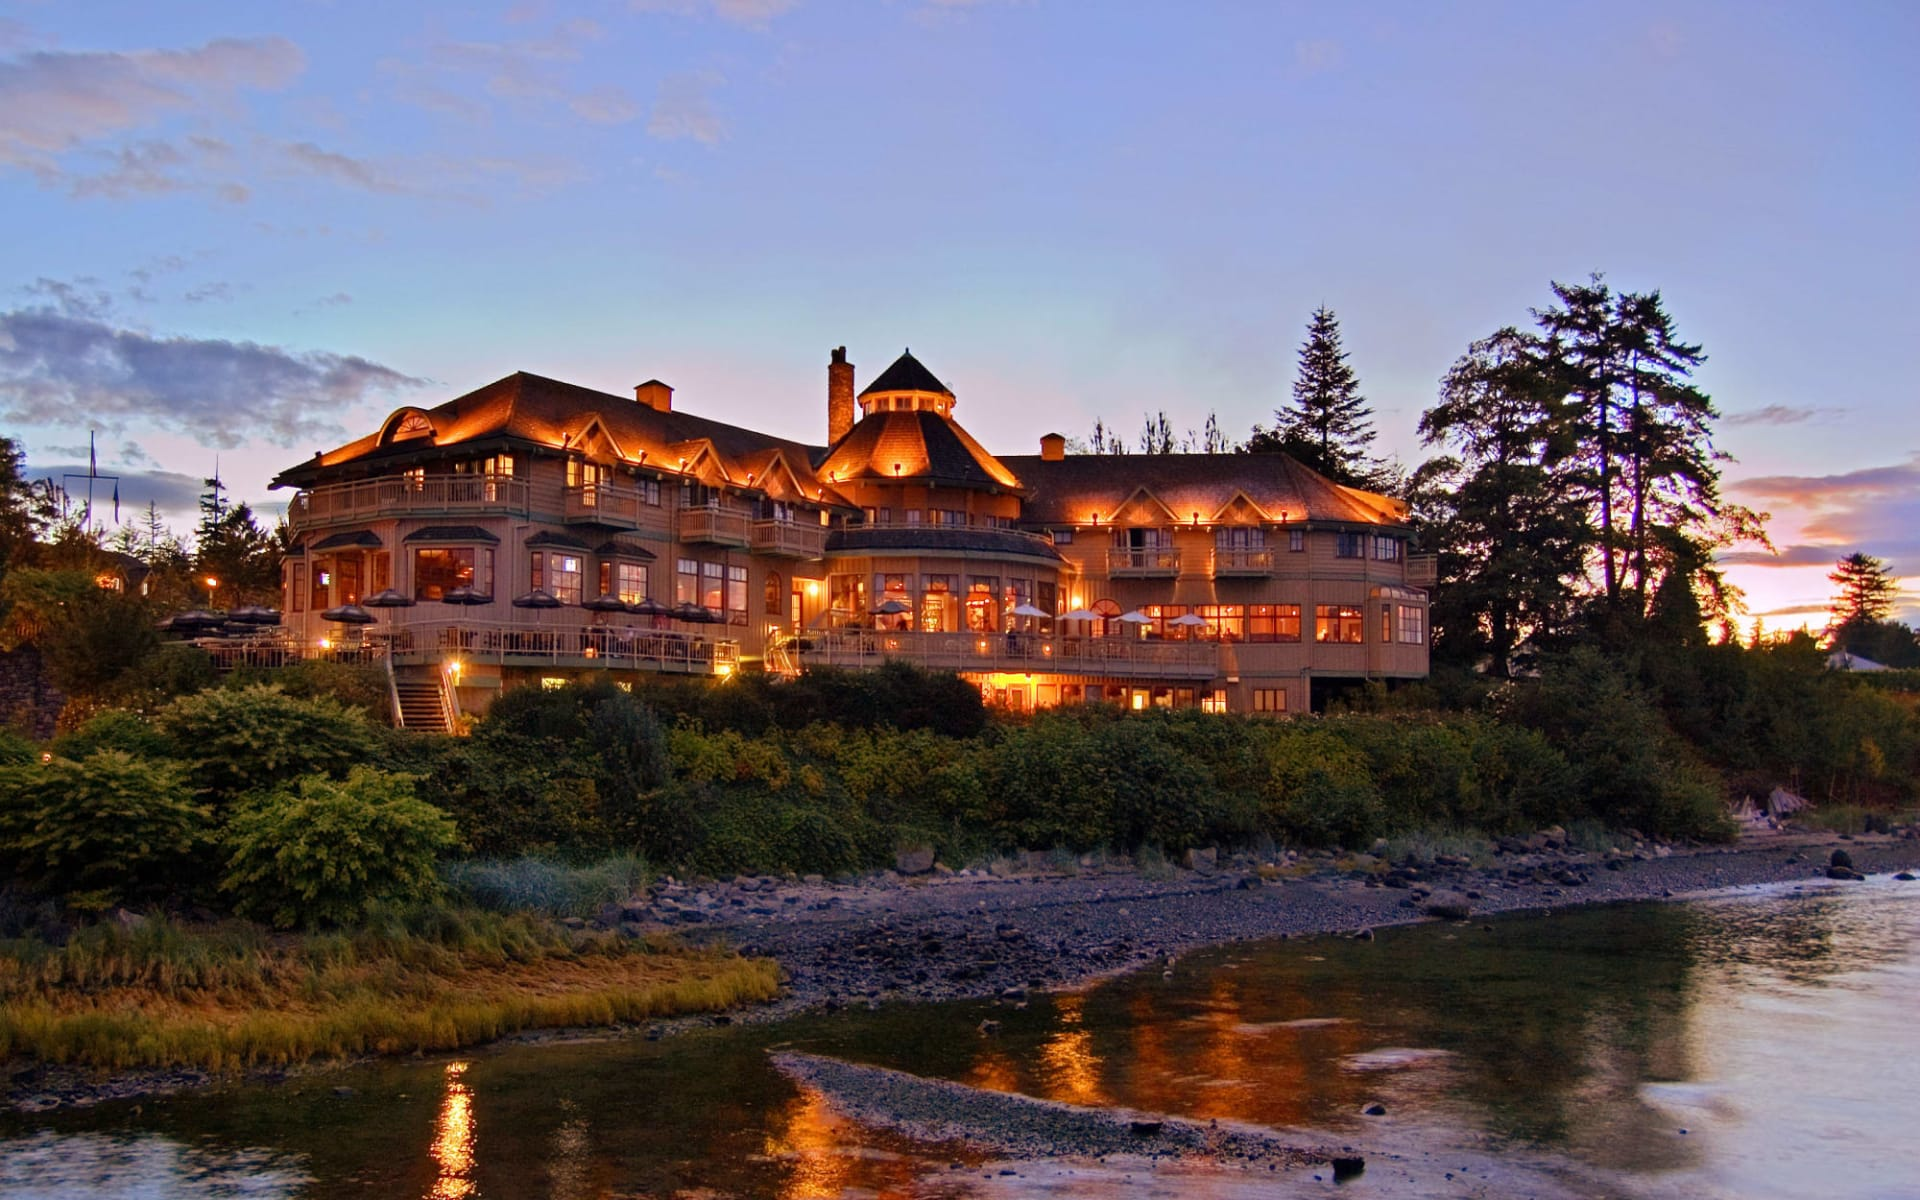 Painter's Lodge Holiday & Fishing Resort in Campbell River:  Painter'sLodgeFishingResort